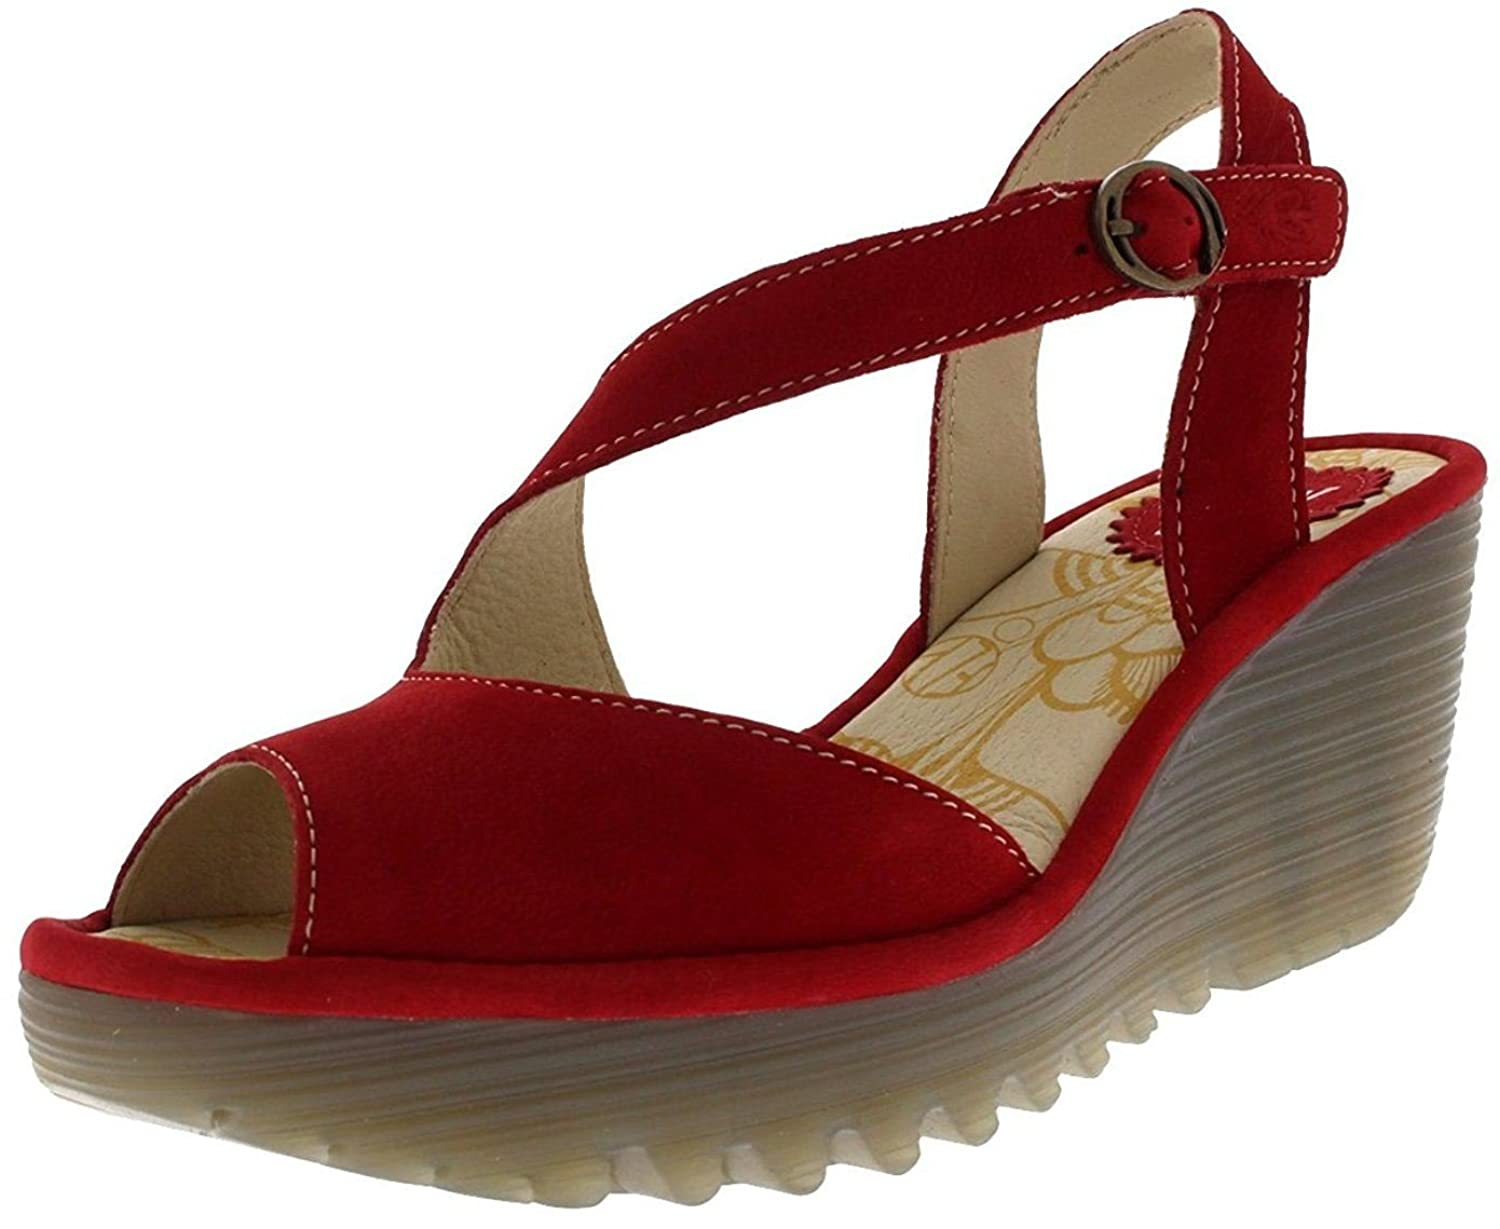 #Fly London Yamp836fly Red Womens Leather Wedge Sandals Shoes B07C5QKKRZ 8 UK 41 EU 10 US